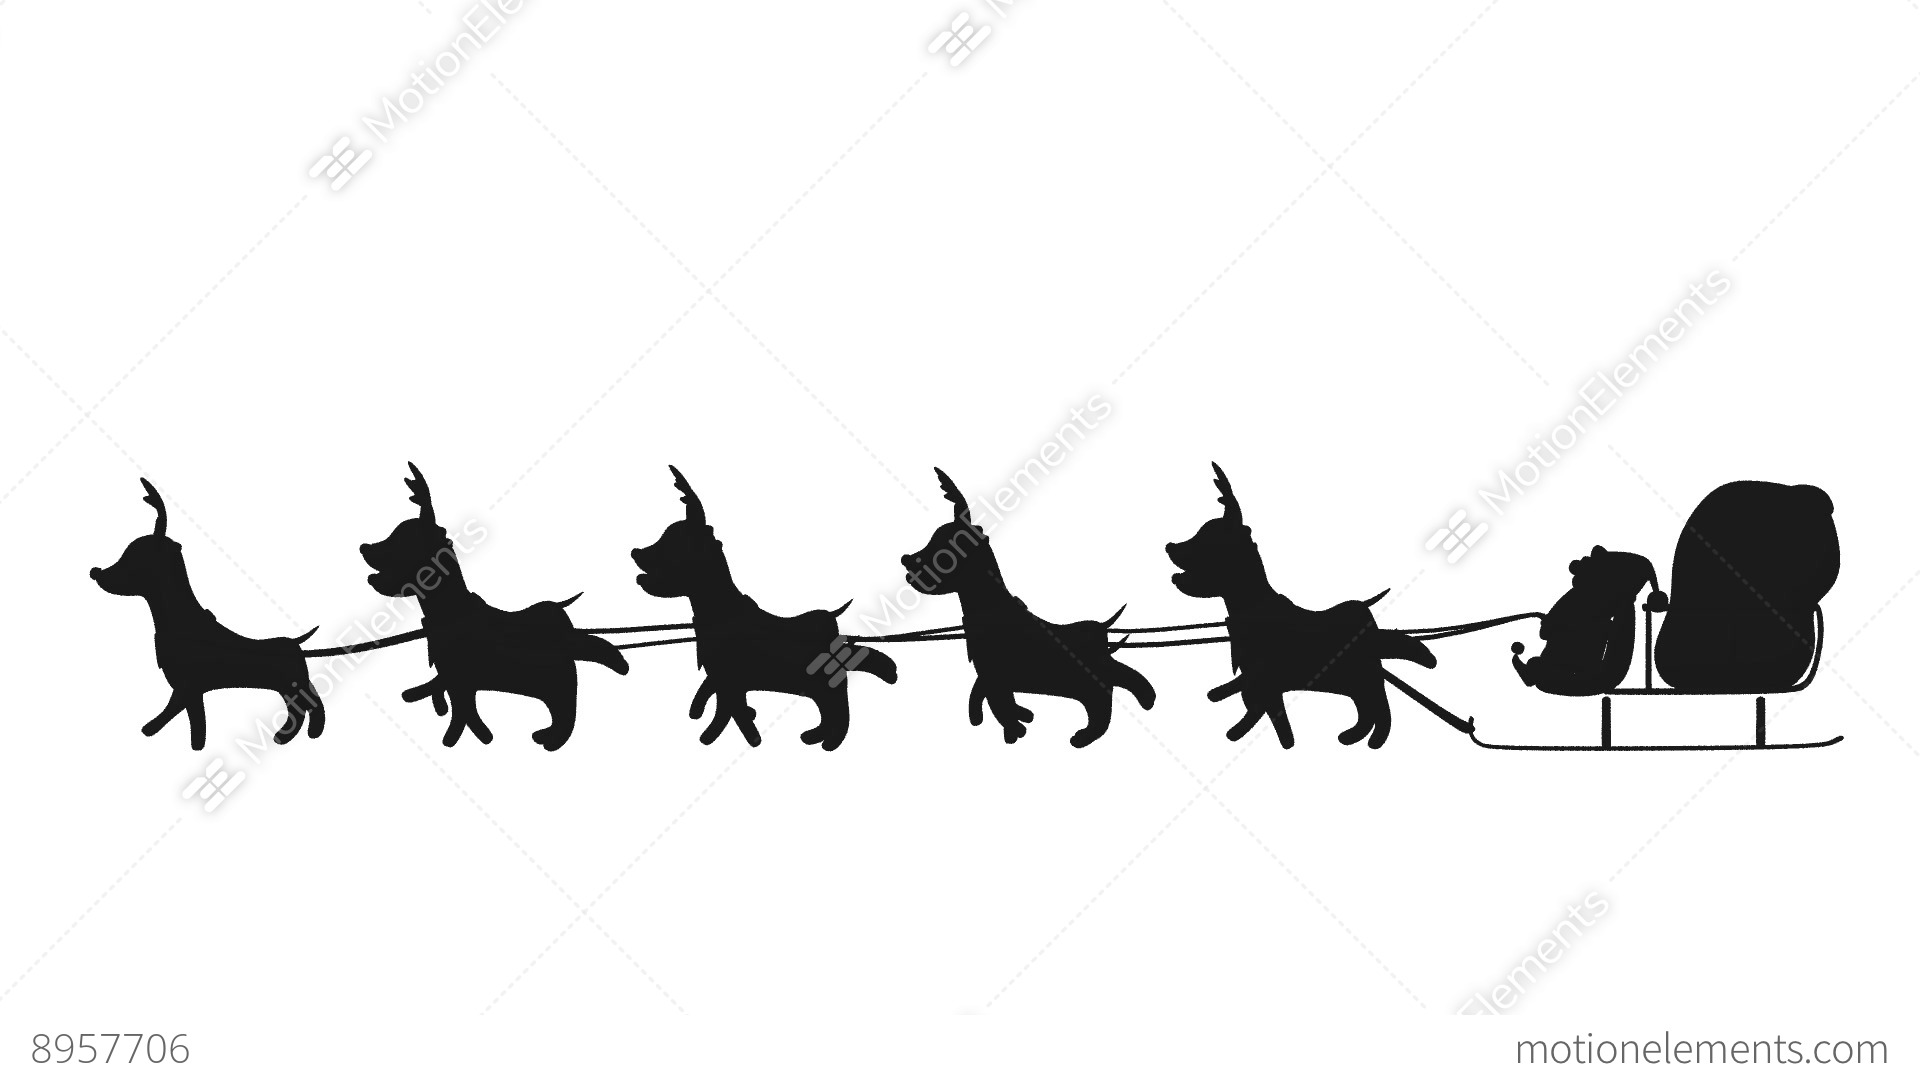 flying santa sleigh by reindeer animation design element for